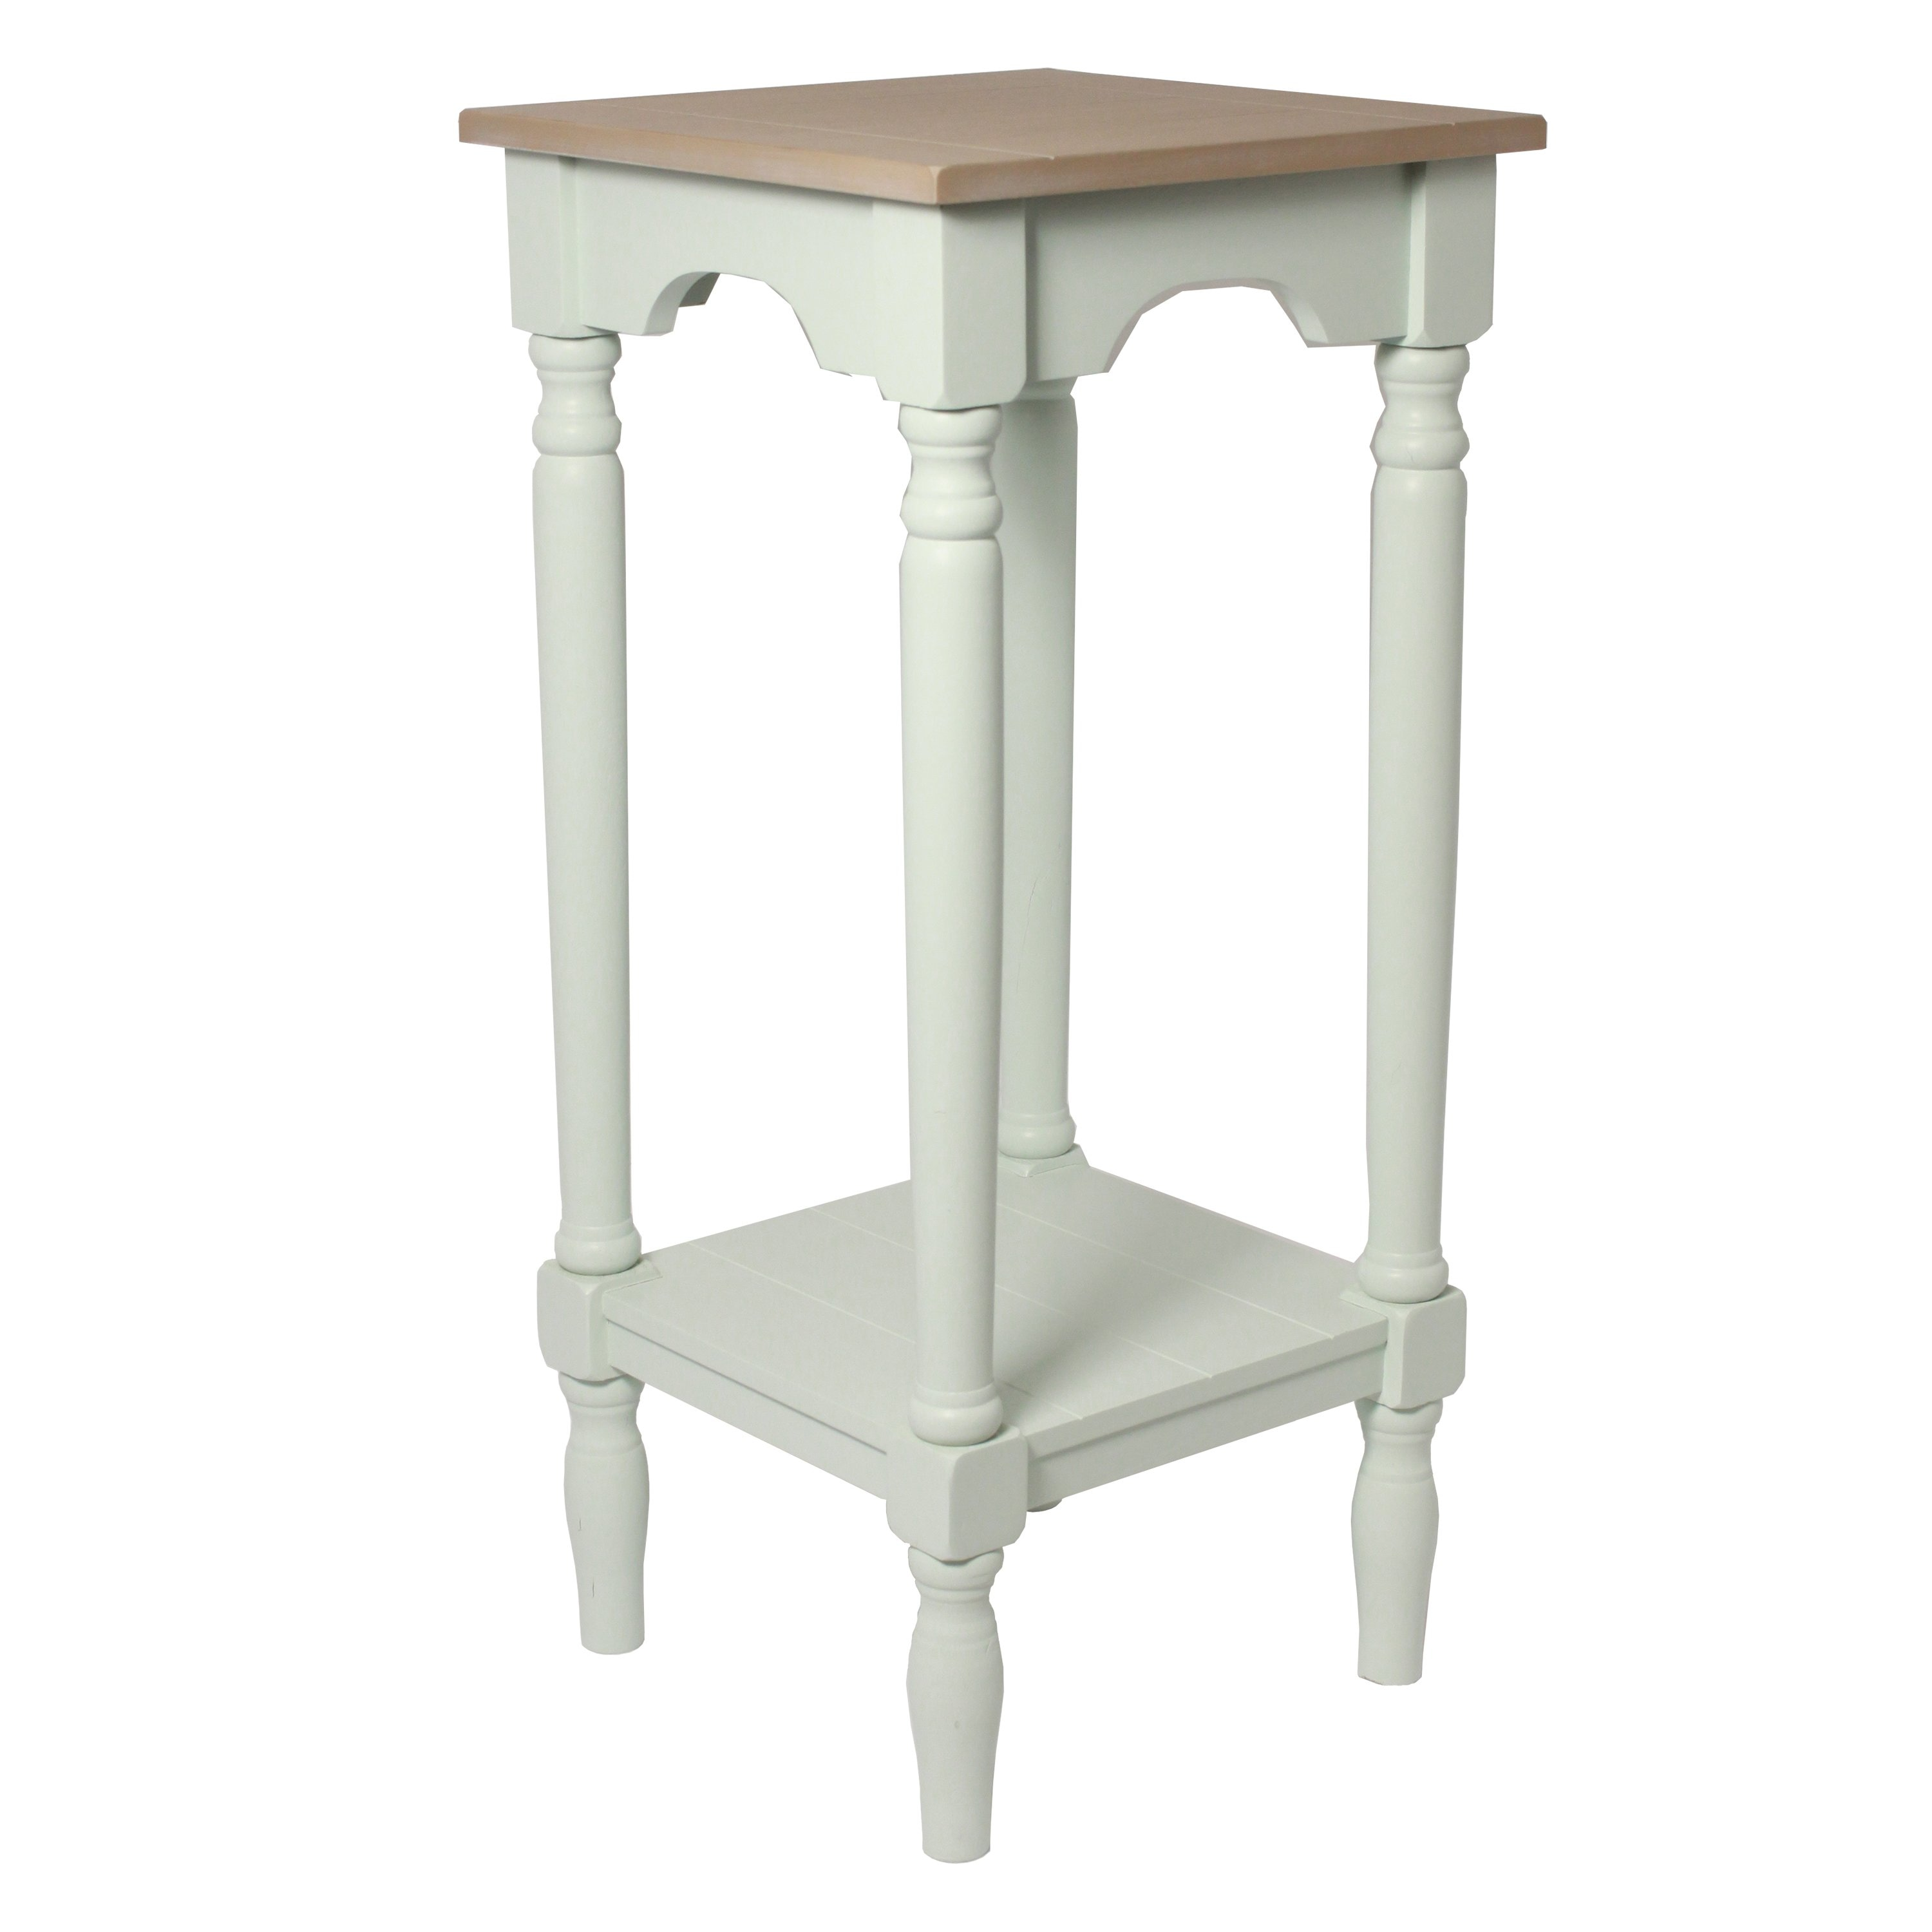 urban designs cyra light blue wood accent table free shipping today uttermost lamps farmhouse round west elm reclaimed outdoor kitchen patio chairs clearance small narrow